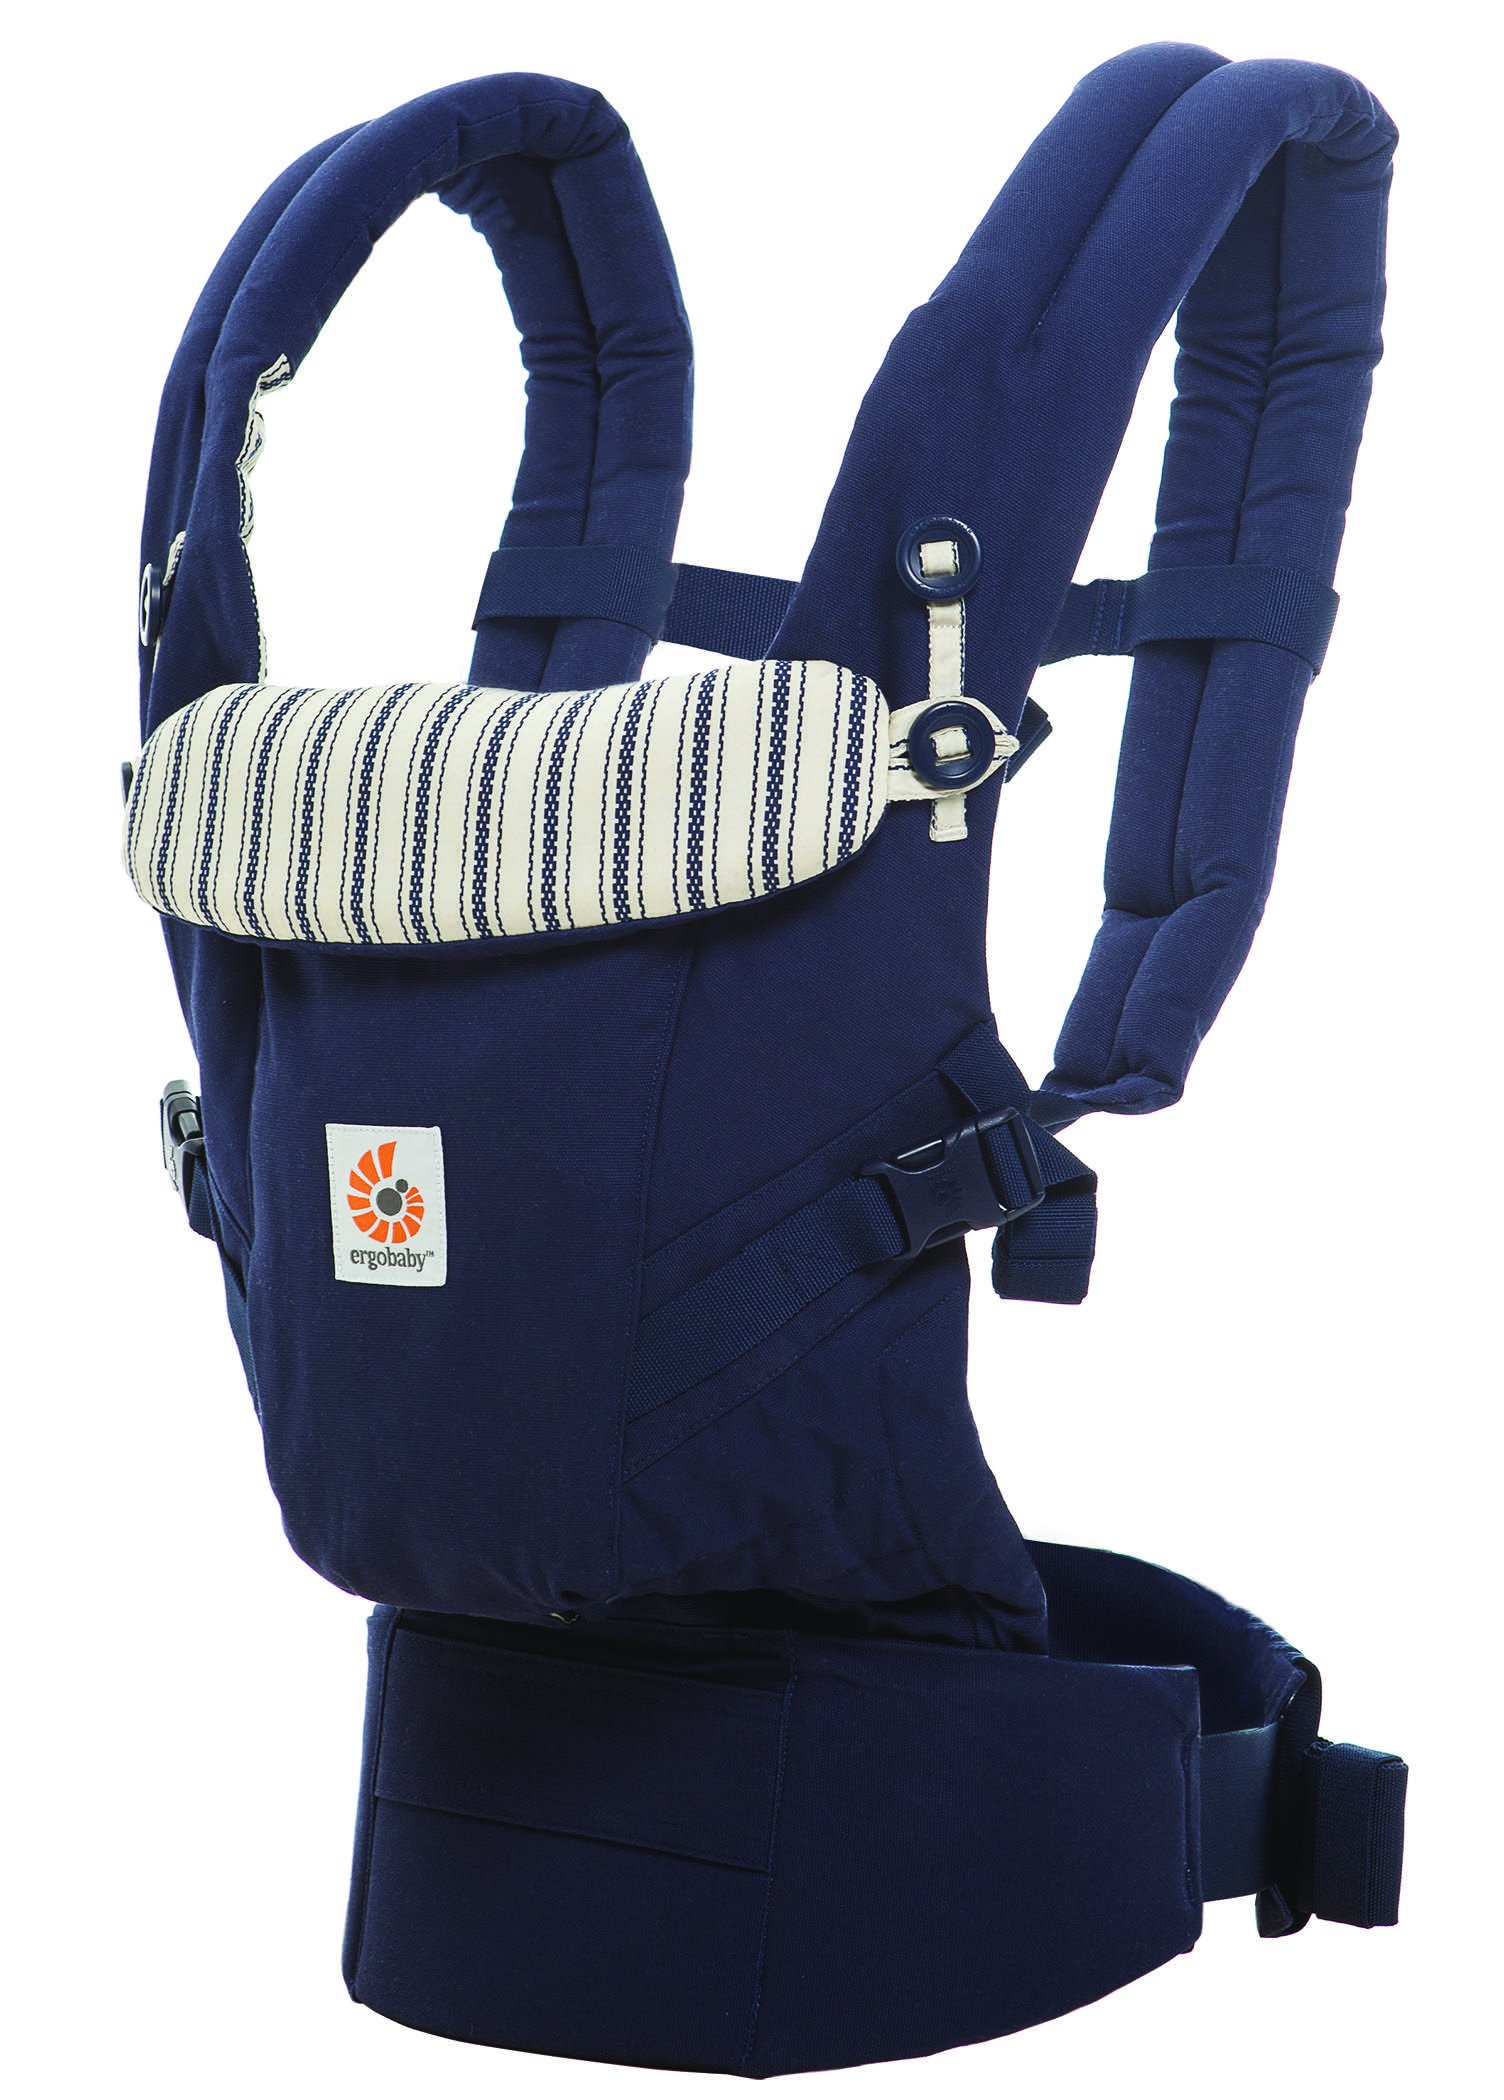 Ergobaby Baby Carrier for Newborn to Toddler, Admiral Blue Adapt 3-Position Ergonomic Child Carrier Backpack Ergobaby Carrier for newborns - The ergonomic bucket seat gradually adjusts to your growing baby, to ensure baby is seated in a natural frog-leg position (M-shape position) from newborn to toddler (3.2-20kg / 7-45lbs). NEW - Now with lumbar support. Long-wearing comfort for parents with even weight distribution between hips and shoulders. Lumbar support waistbelt that can be adjusted to the height of the carry position for extra, long-wearing comfort. 3carry positions: front-inward, hip and back. The carrier has a padded, foldable head and neck support and a tuck-away baby hood for sun protection (UPF50+) and privacy. It is possible to breastfeed in the carrier. 1